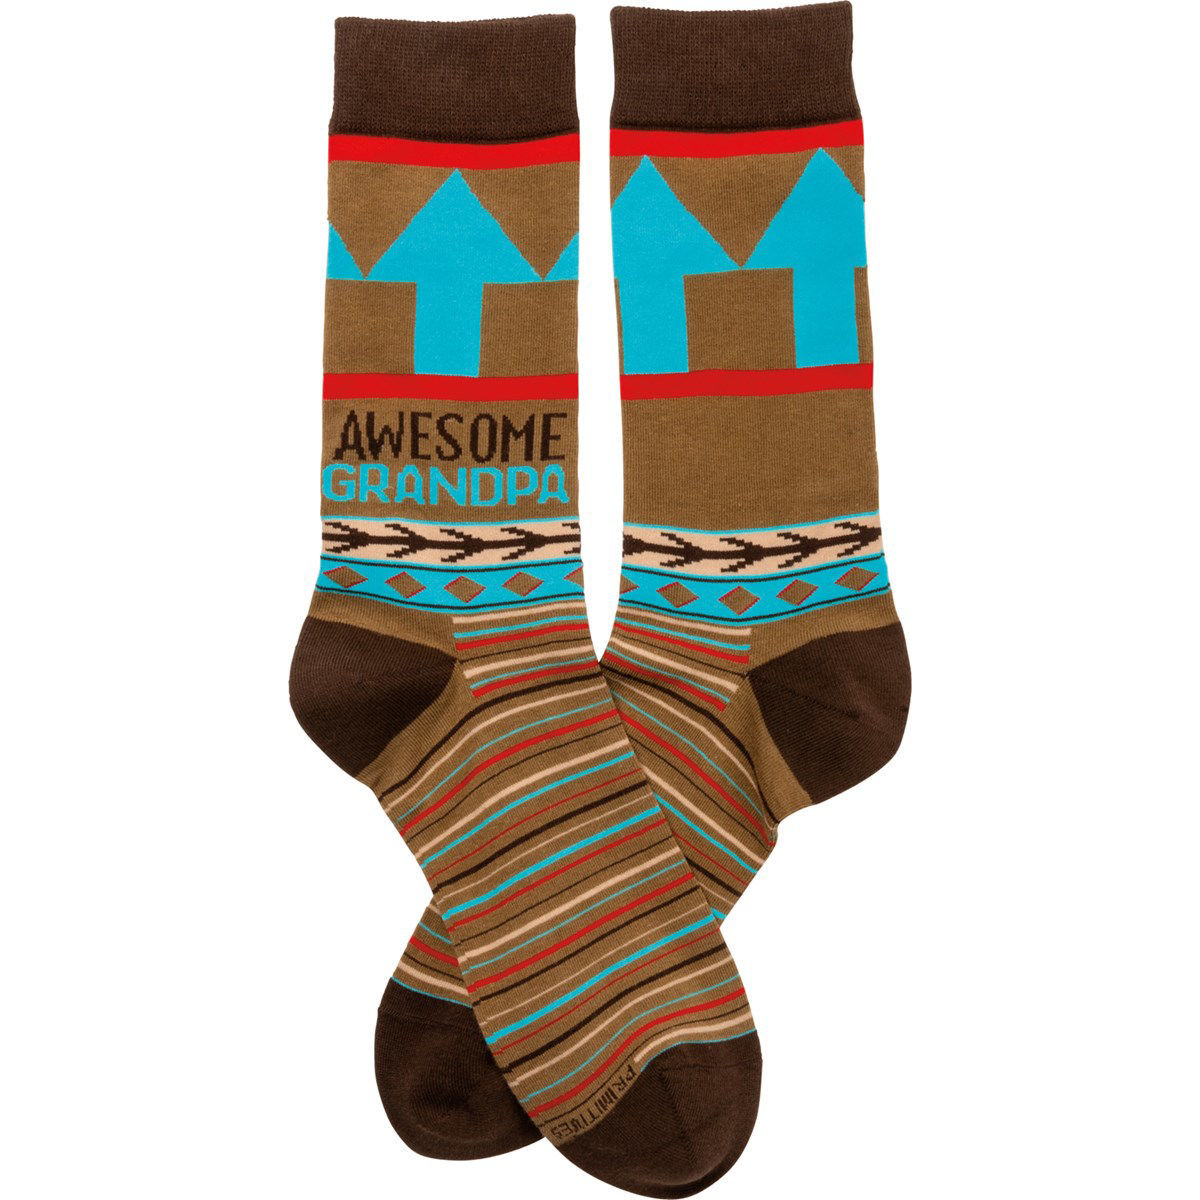 Awesome Grandpa Socks by Primitives by Kathy